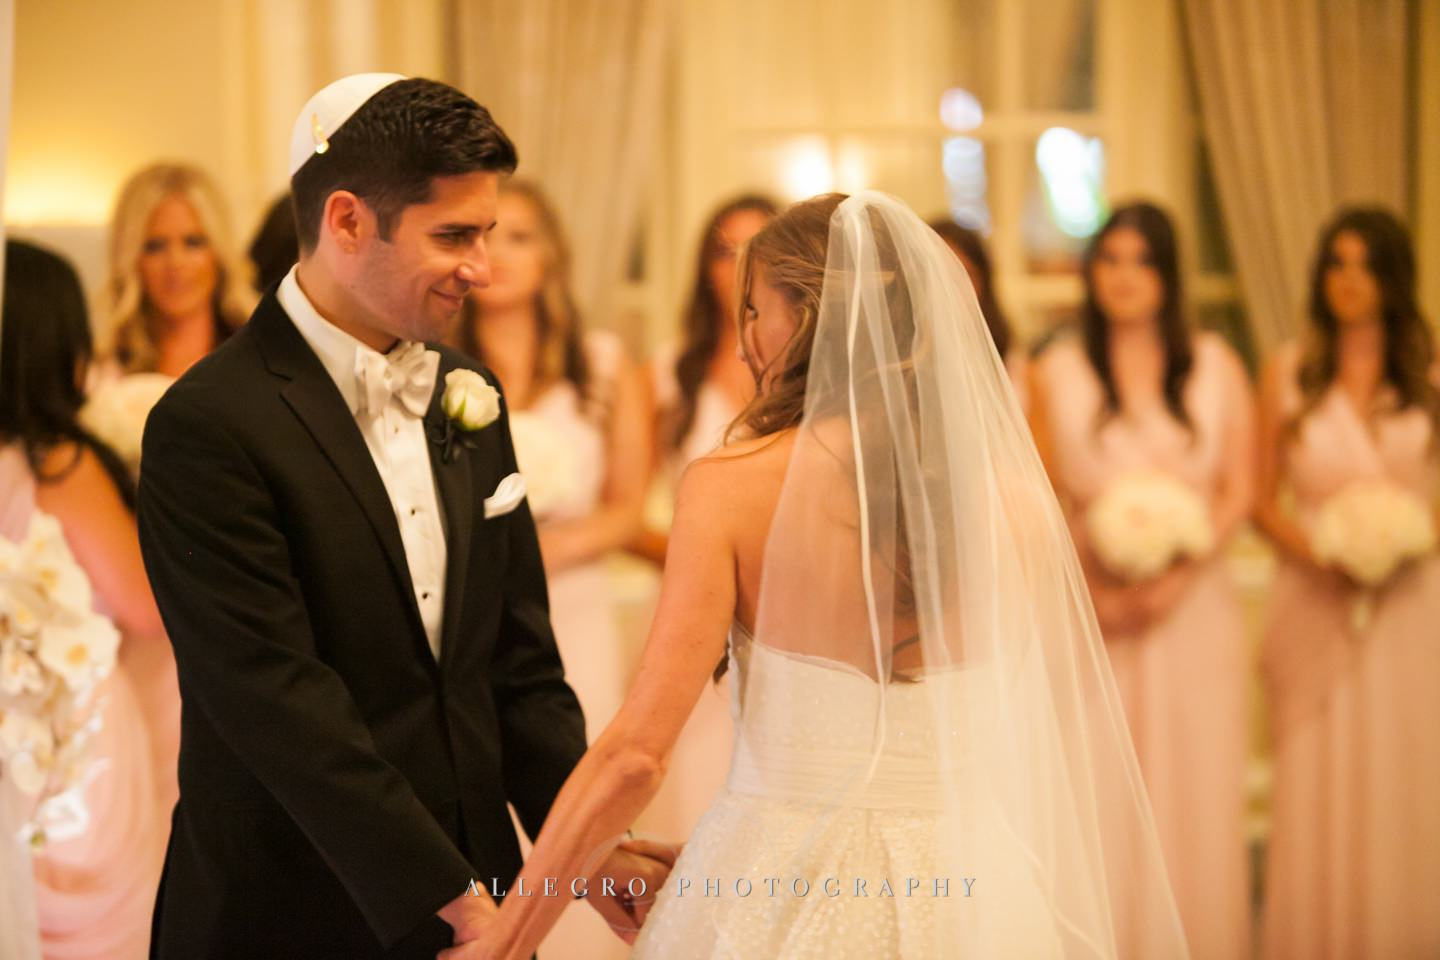 circling each other- boston jewish wedding - photo by allegro photography